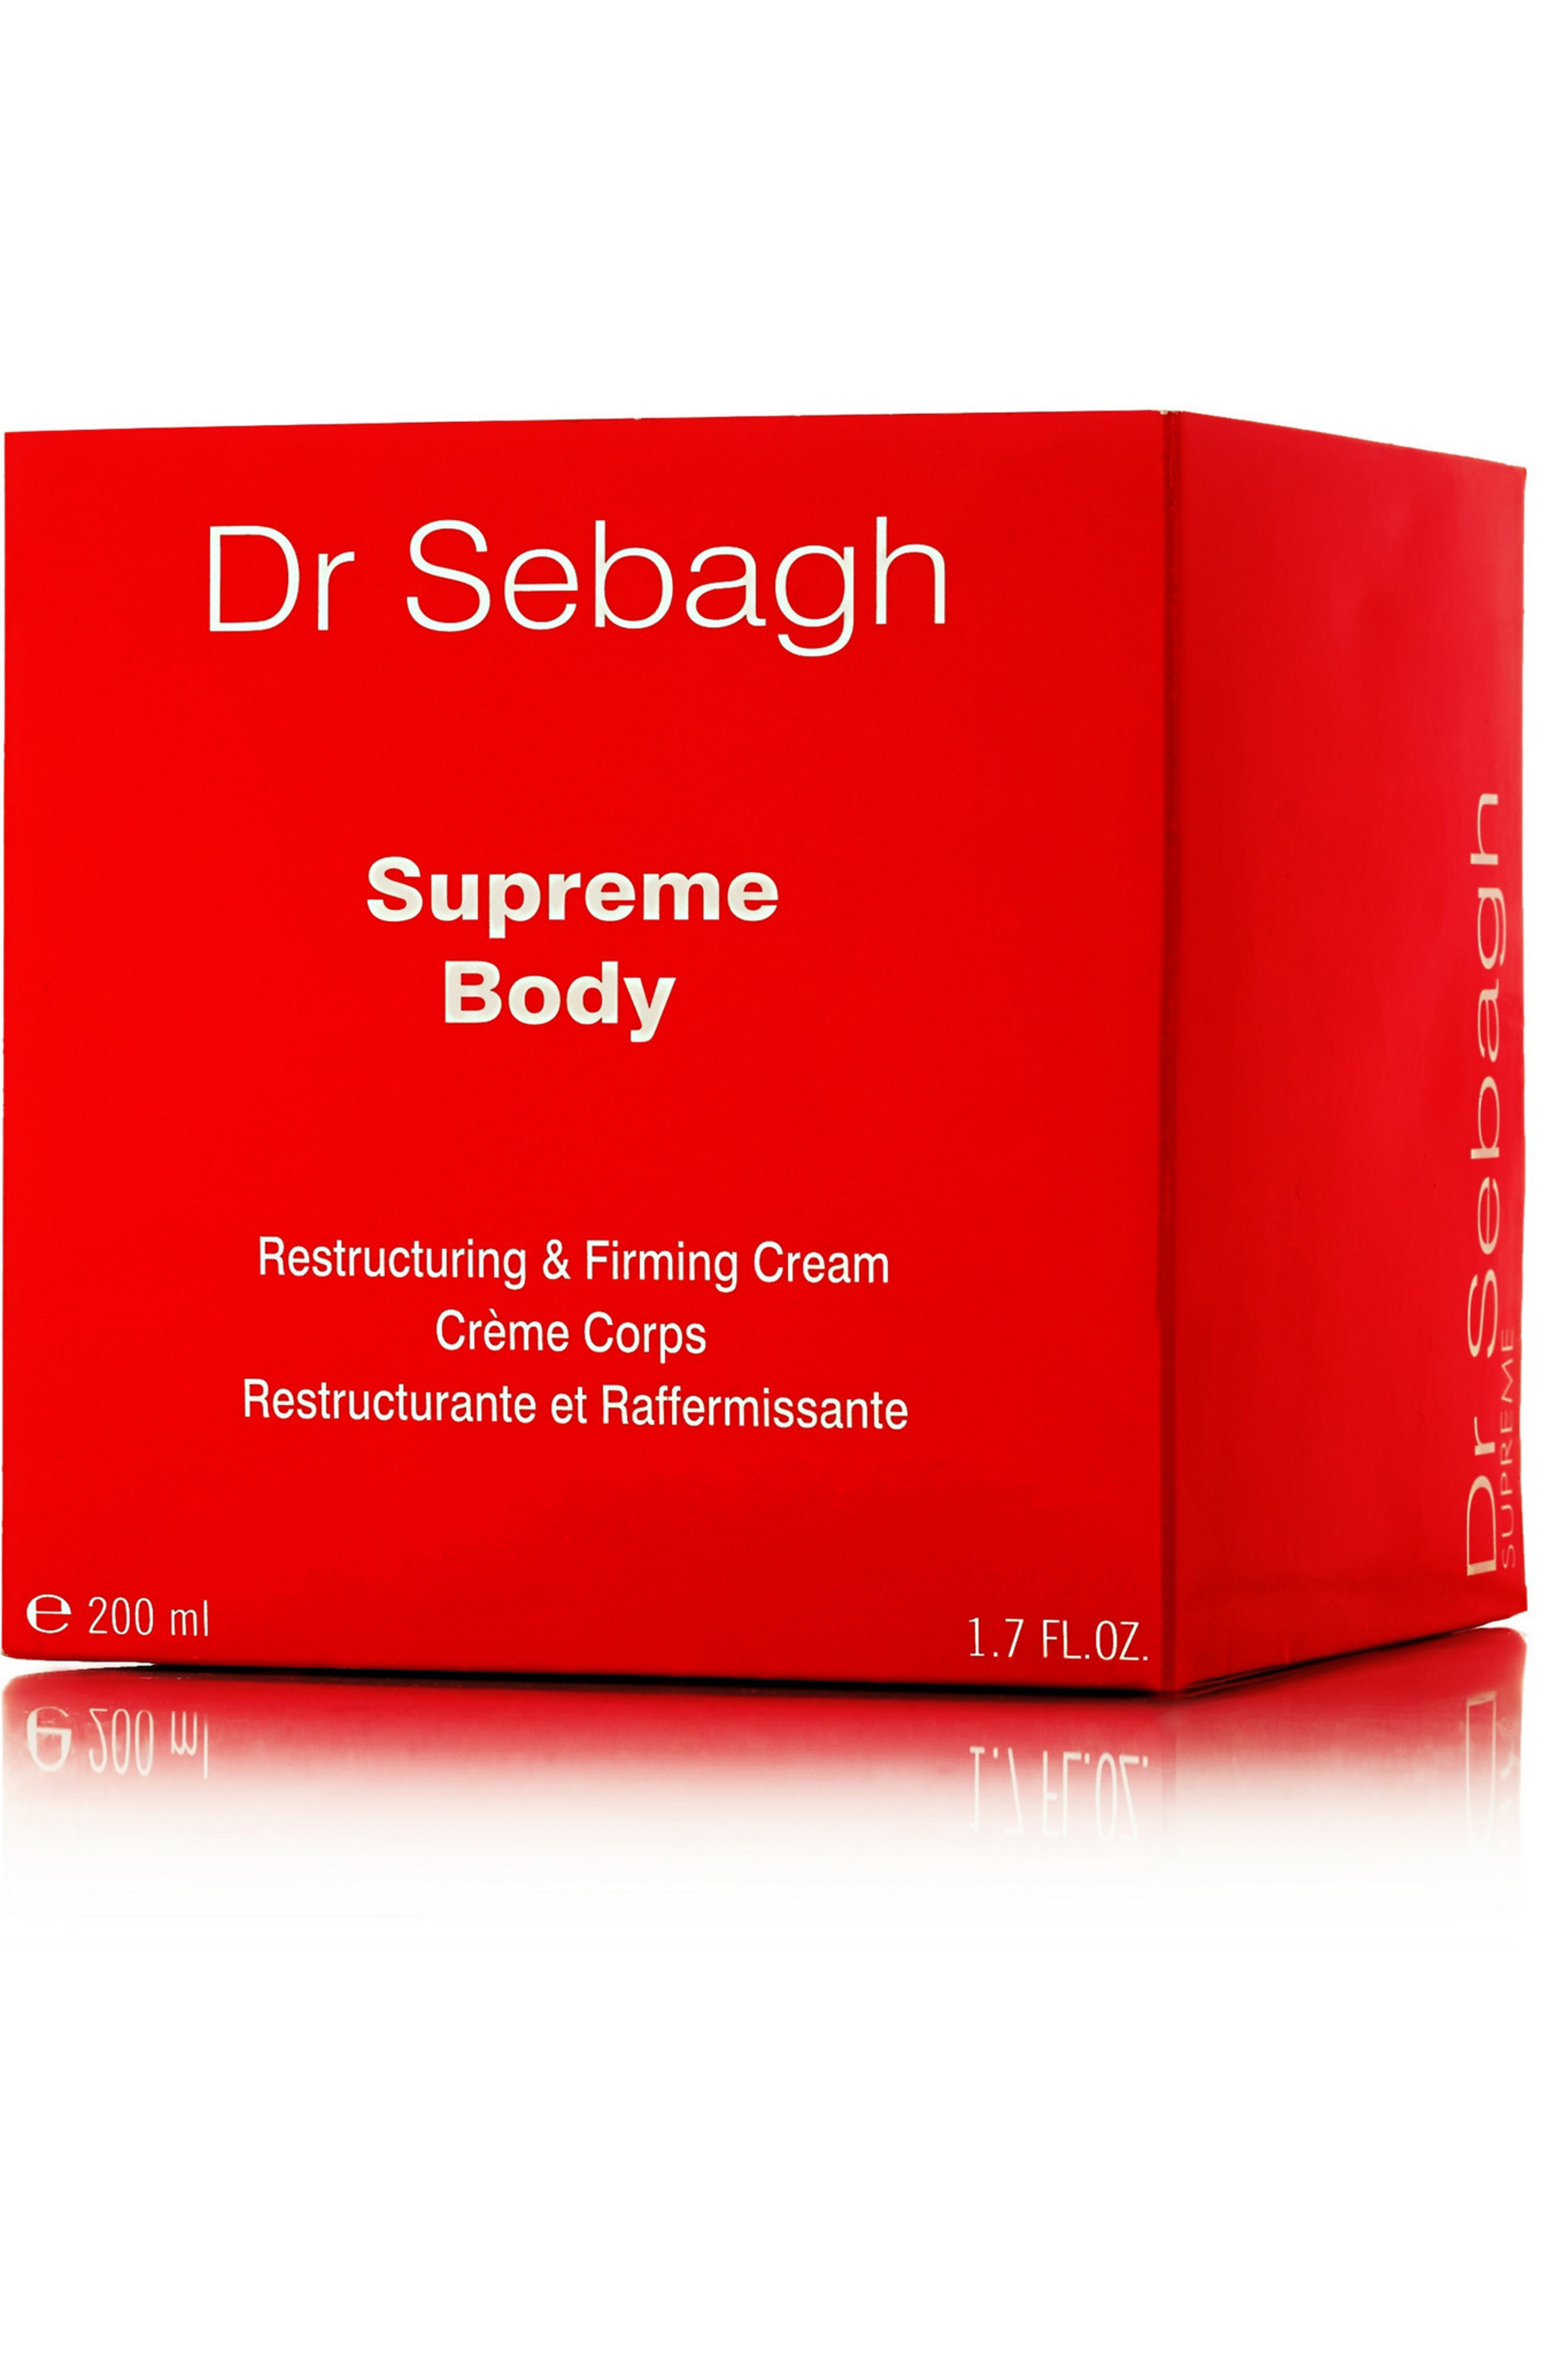 Dr Sebagh Supreme Body Restructuring & Firming Cream, 200ml